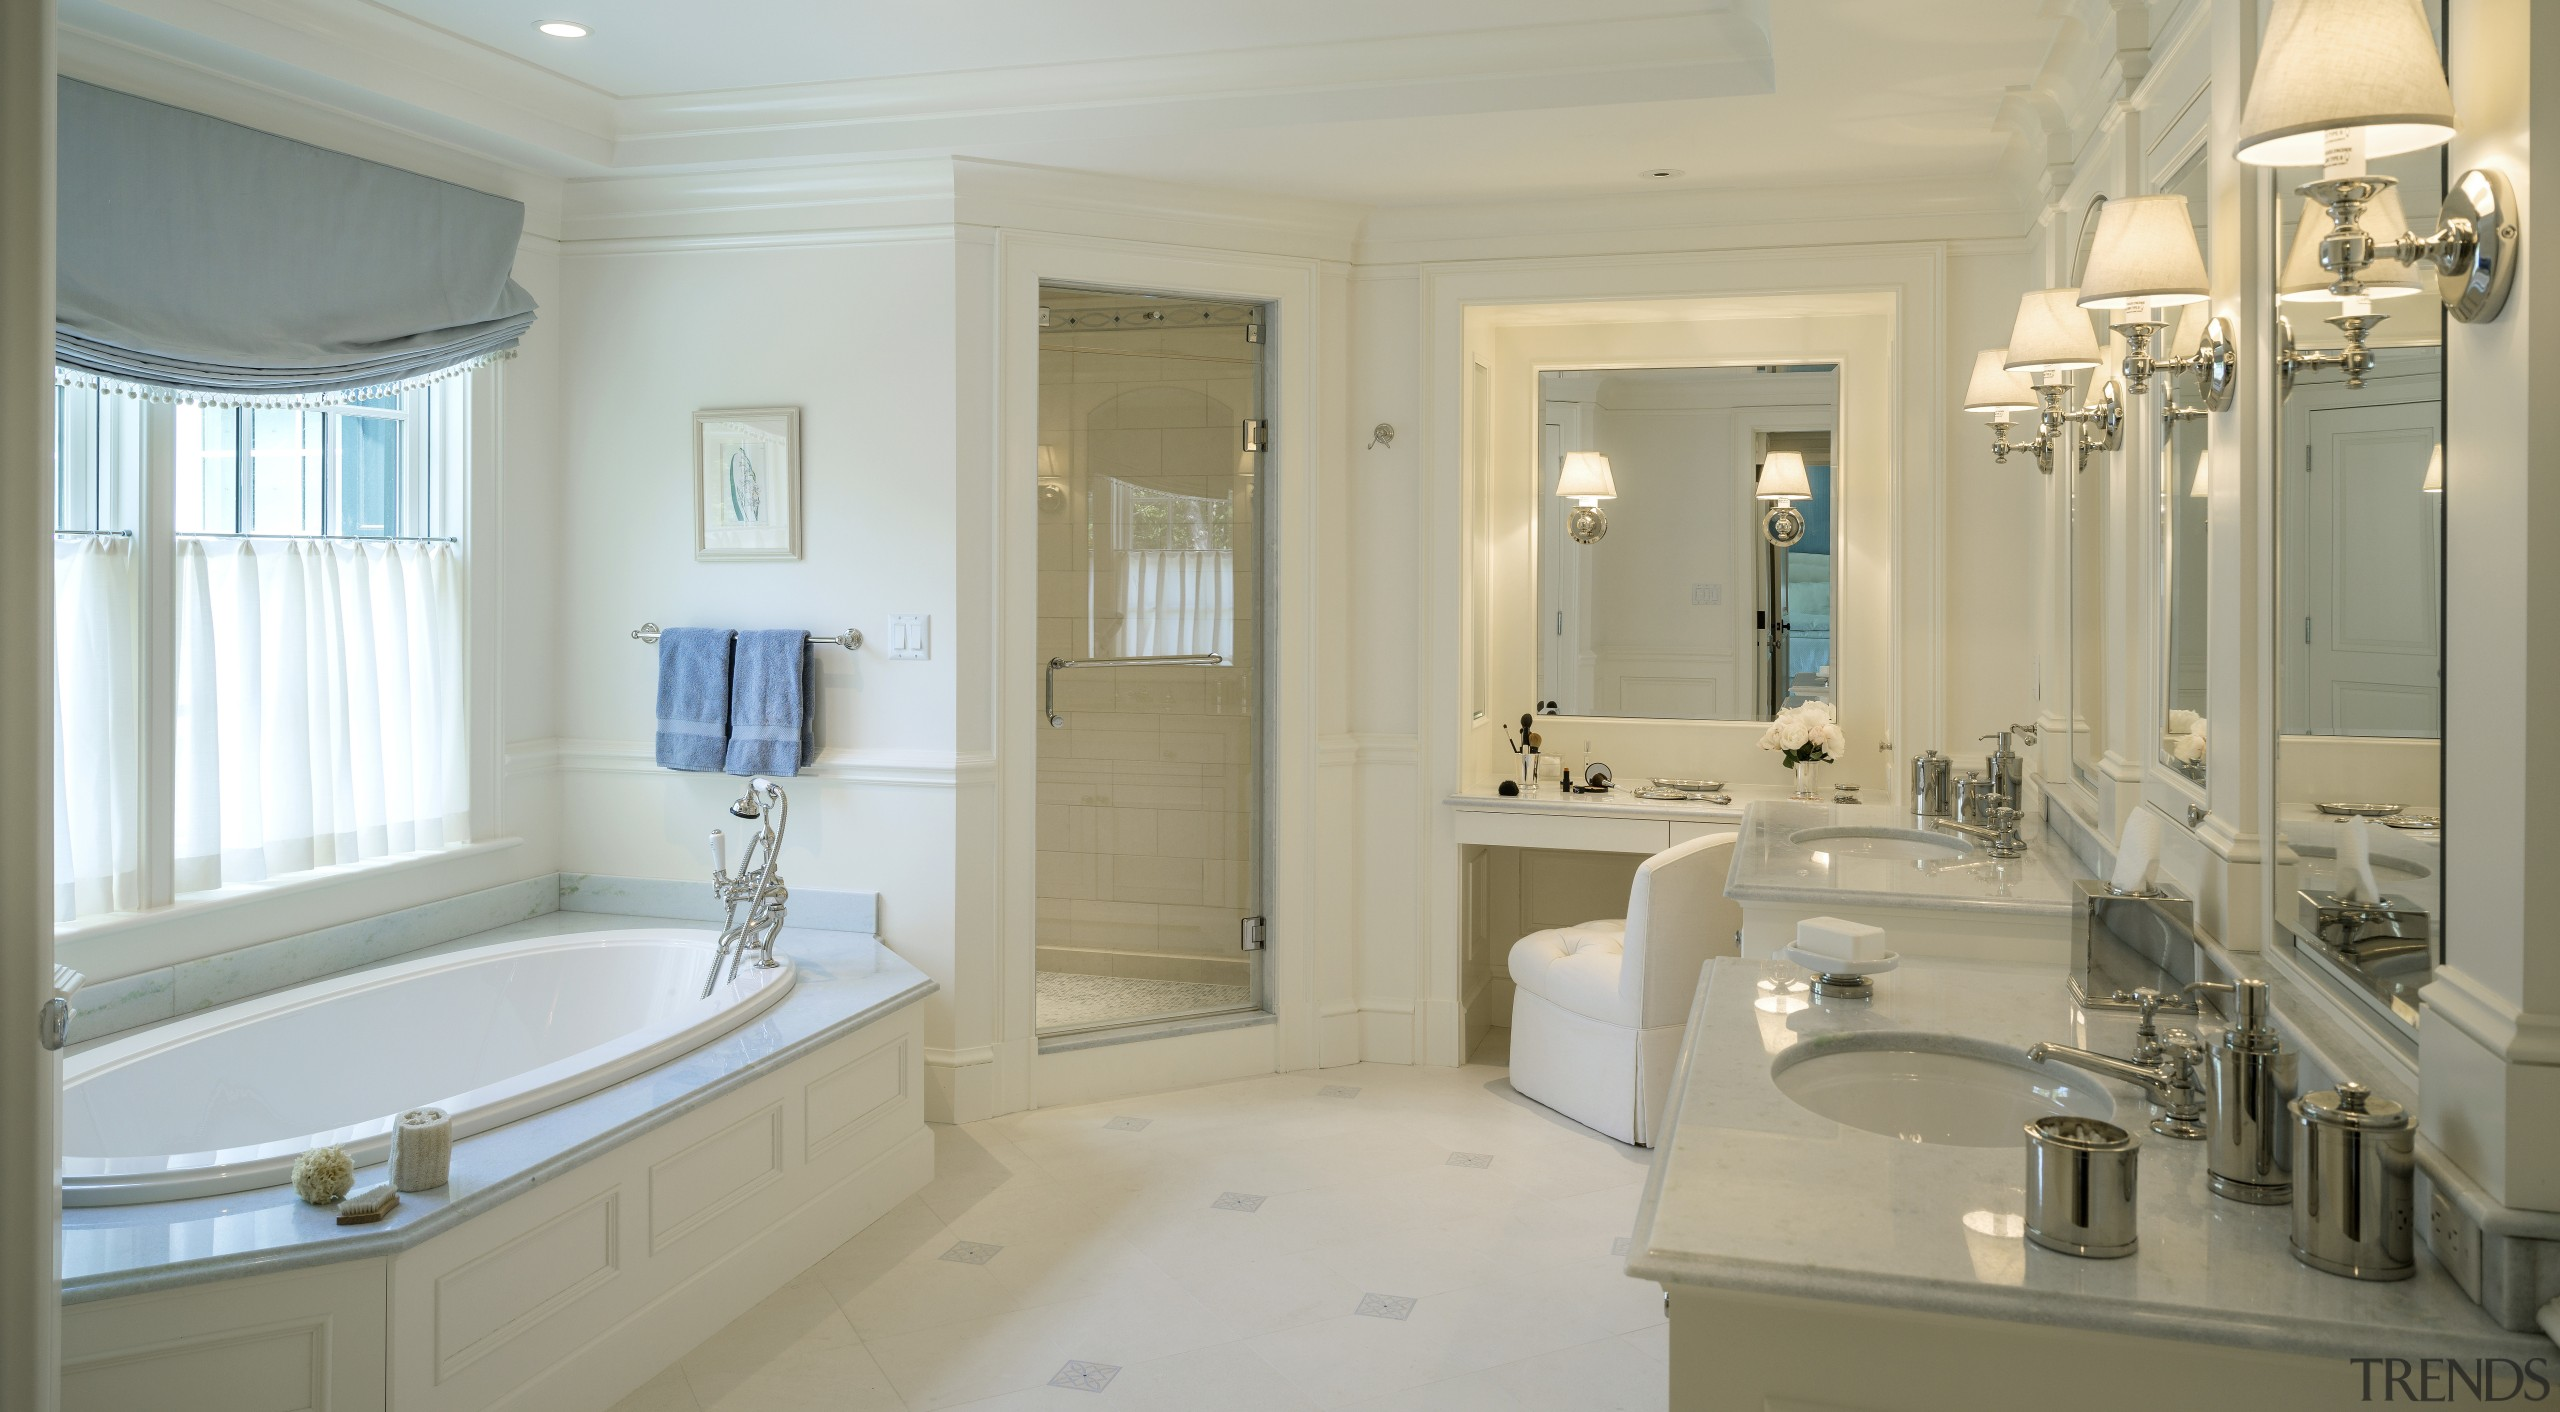 Painted millwork reinforces the traditional character of this bathroom, estate, home, interior design, property, real estate, room, wall, window, orange, gray